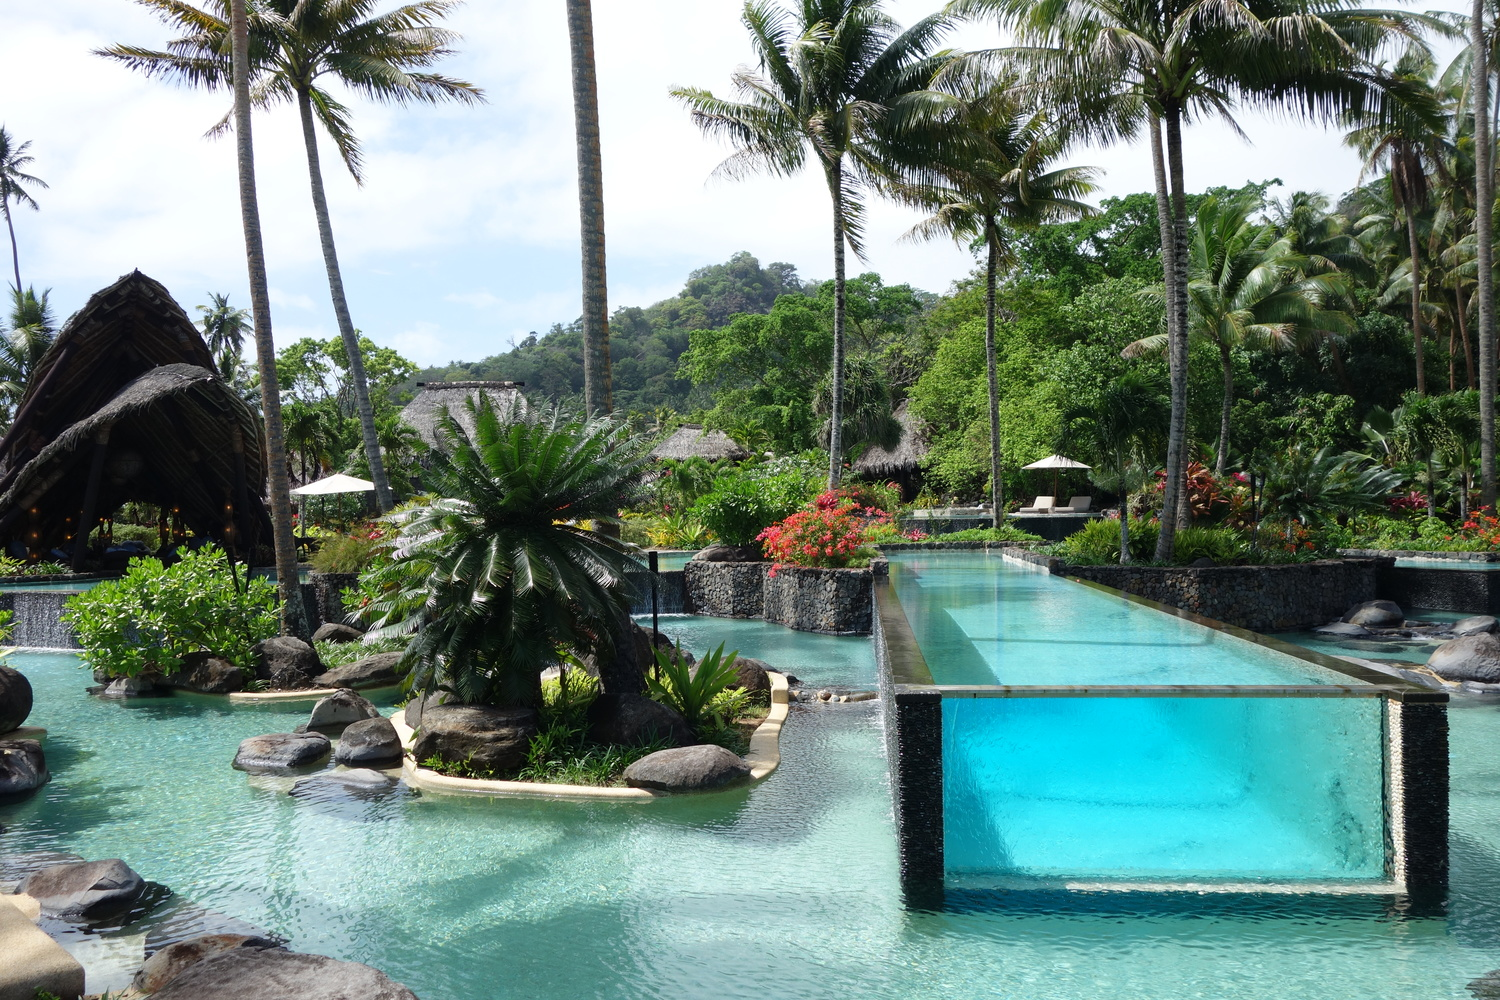 Laucala pool horizontal 1.JPG